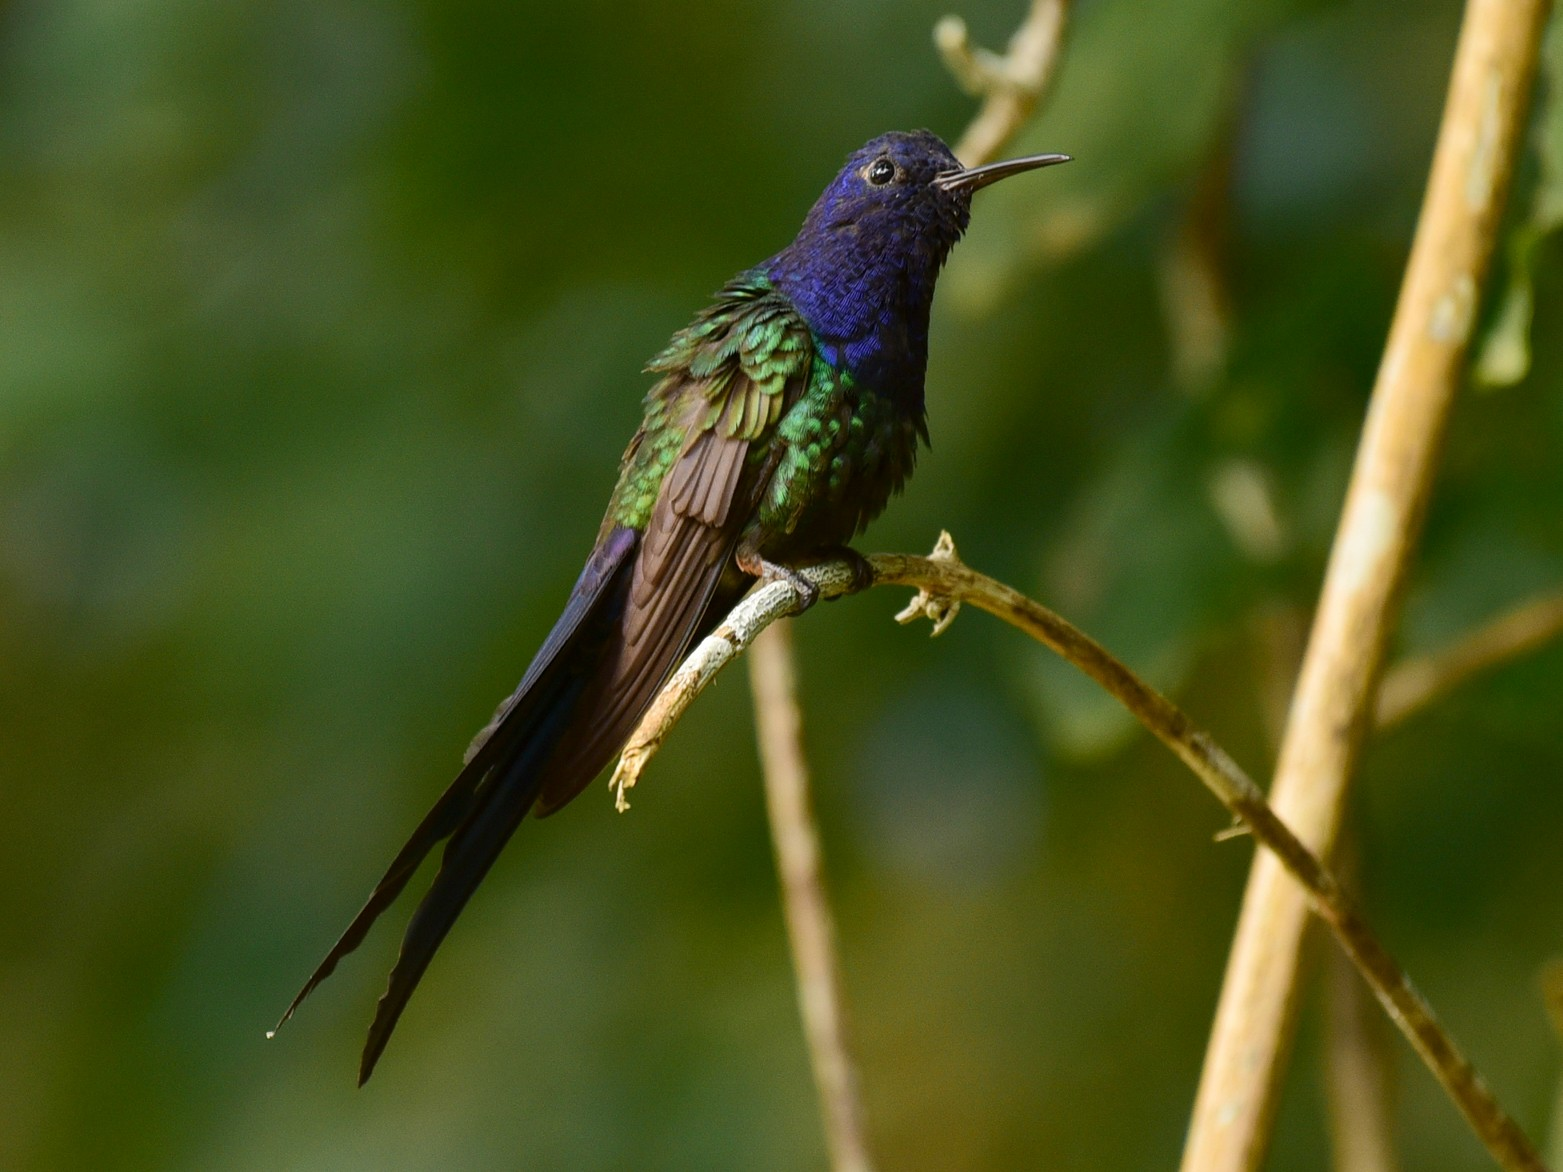 Swallow-tailed Hummingbird - Luiz Moschini